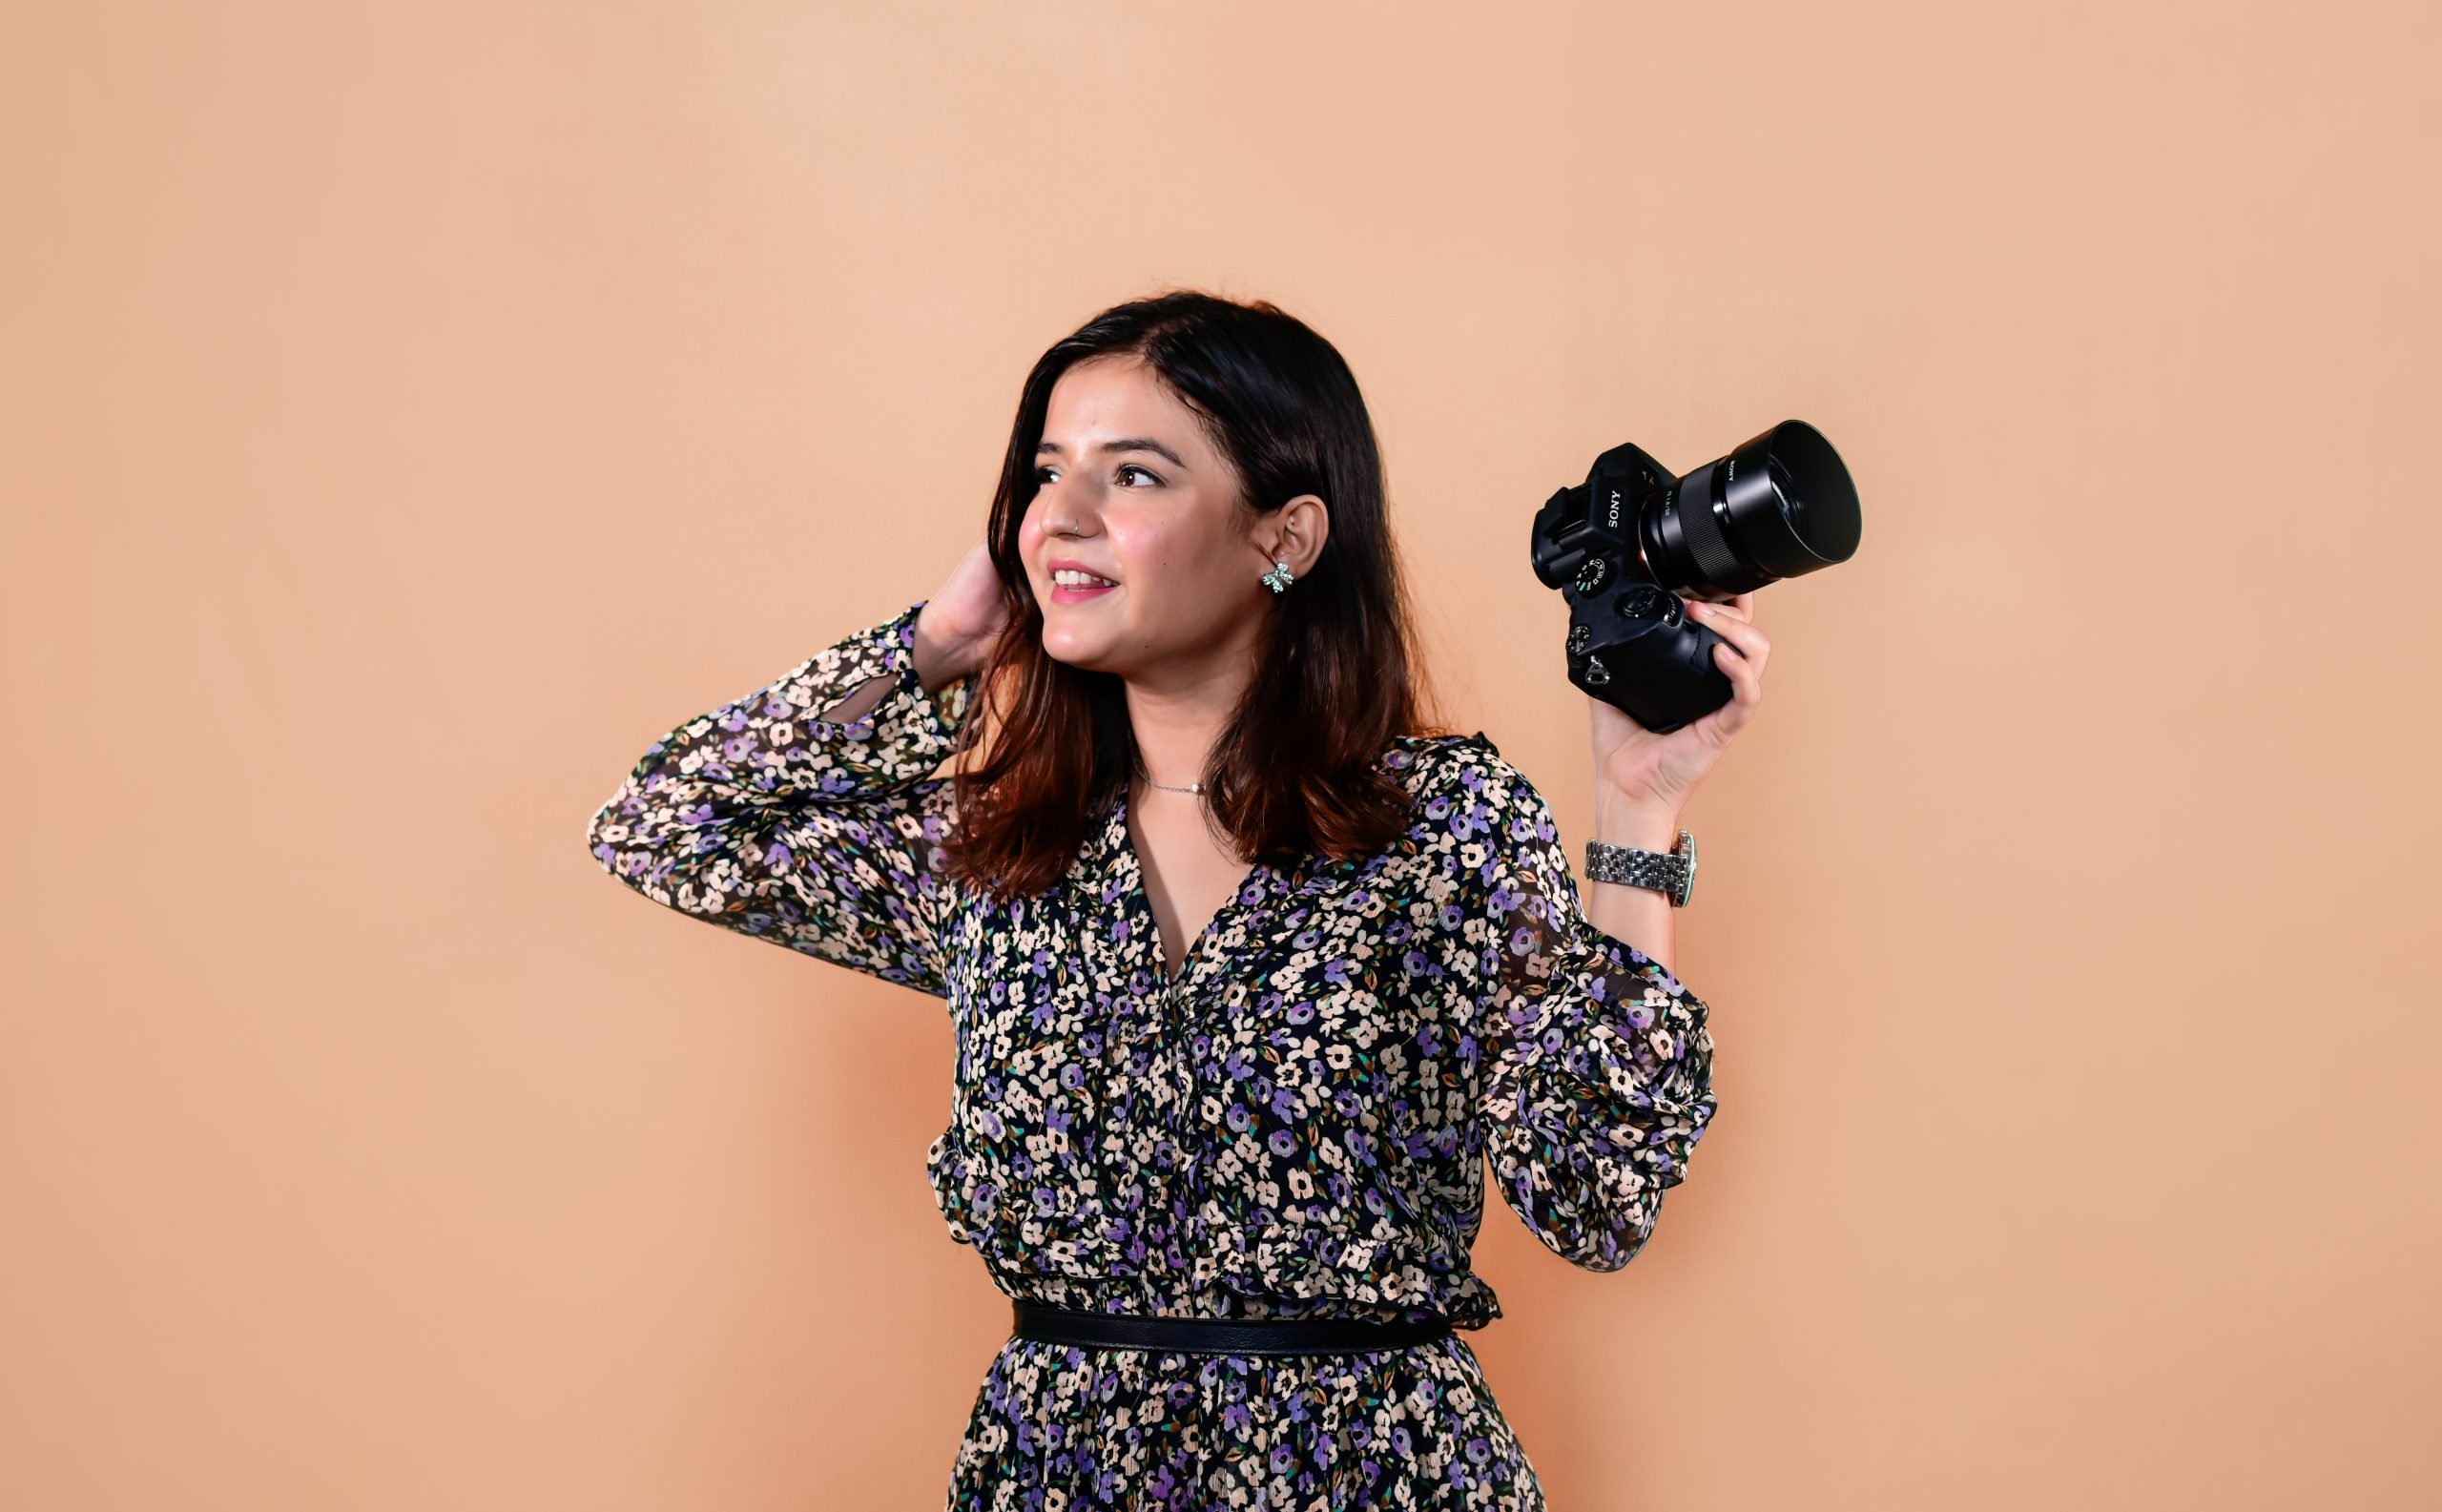 A girl holding a camera happily.